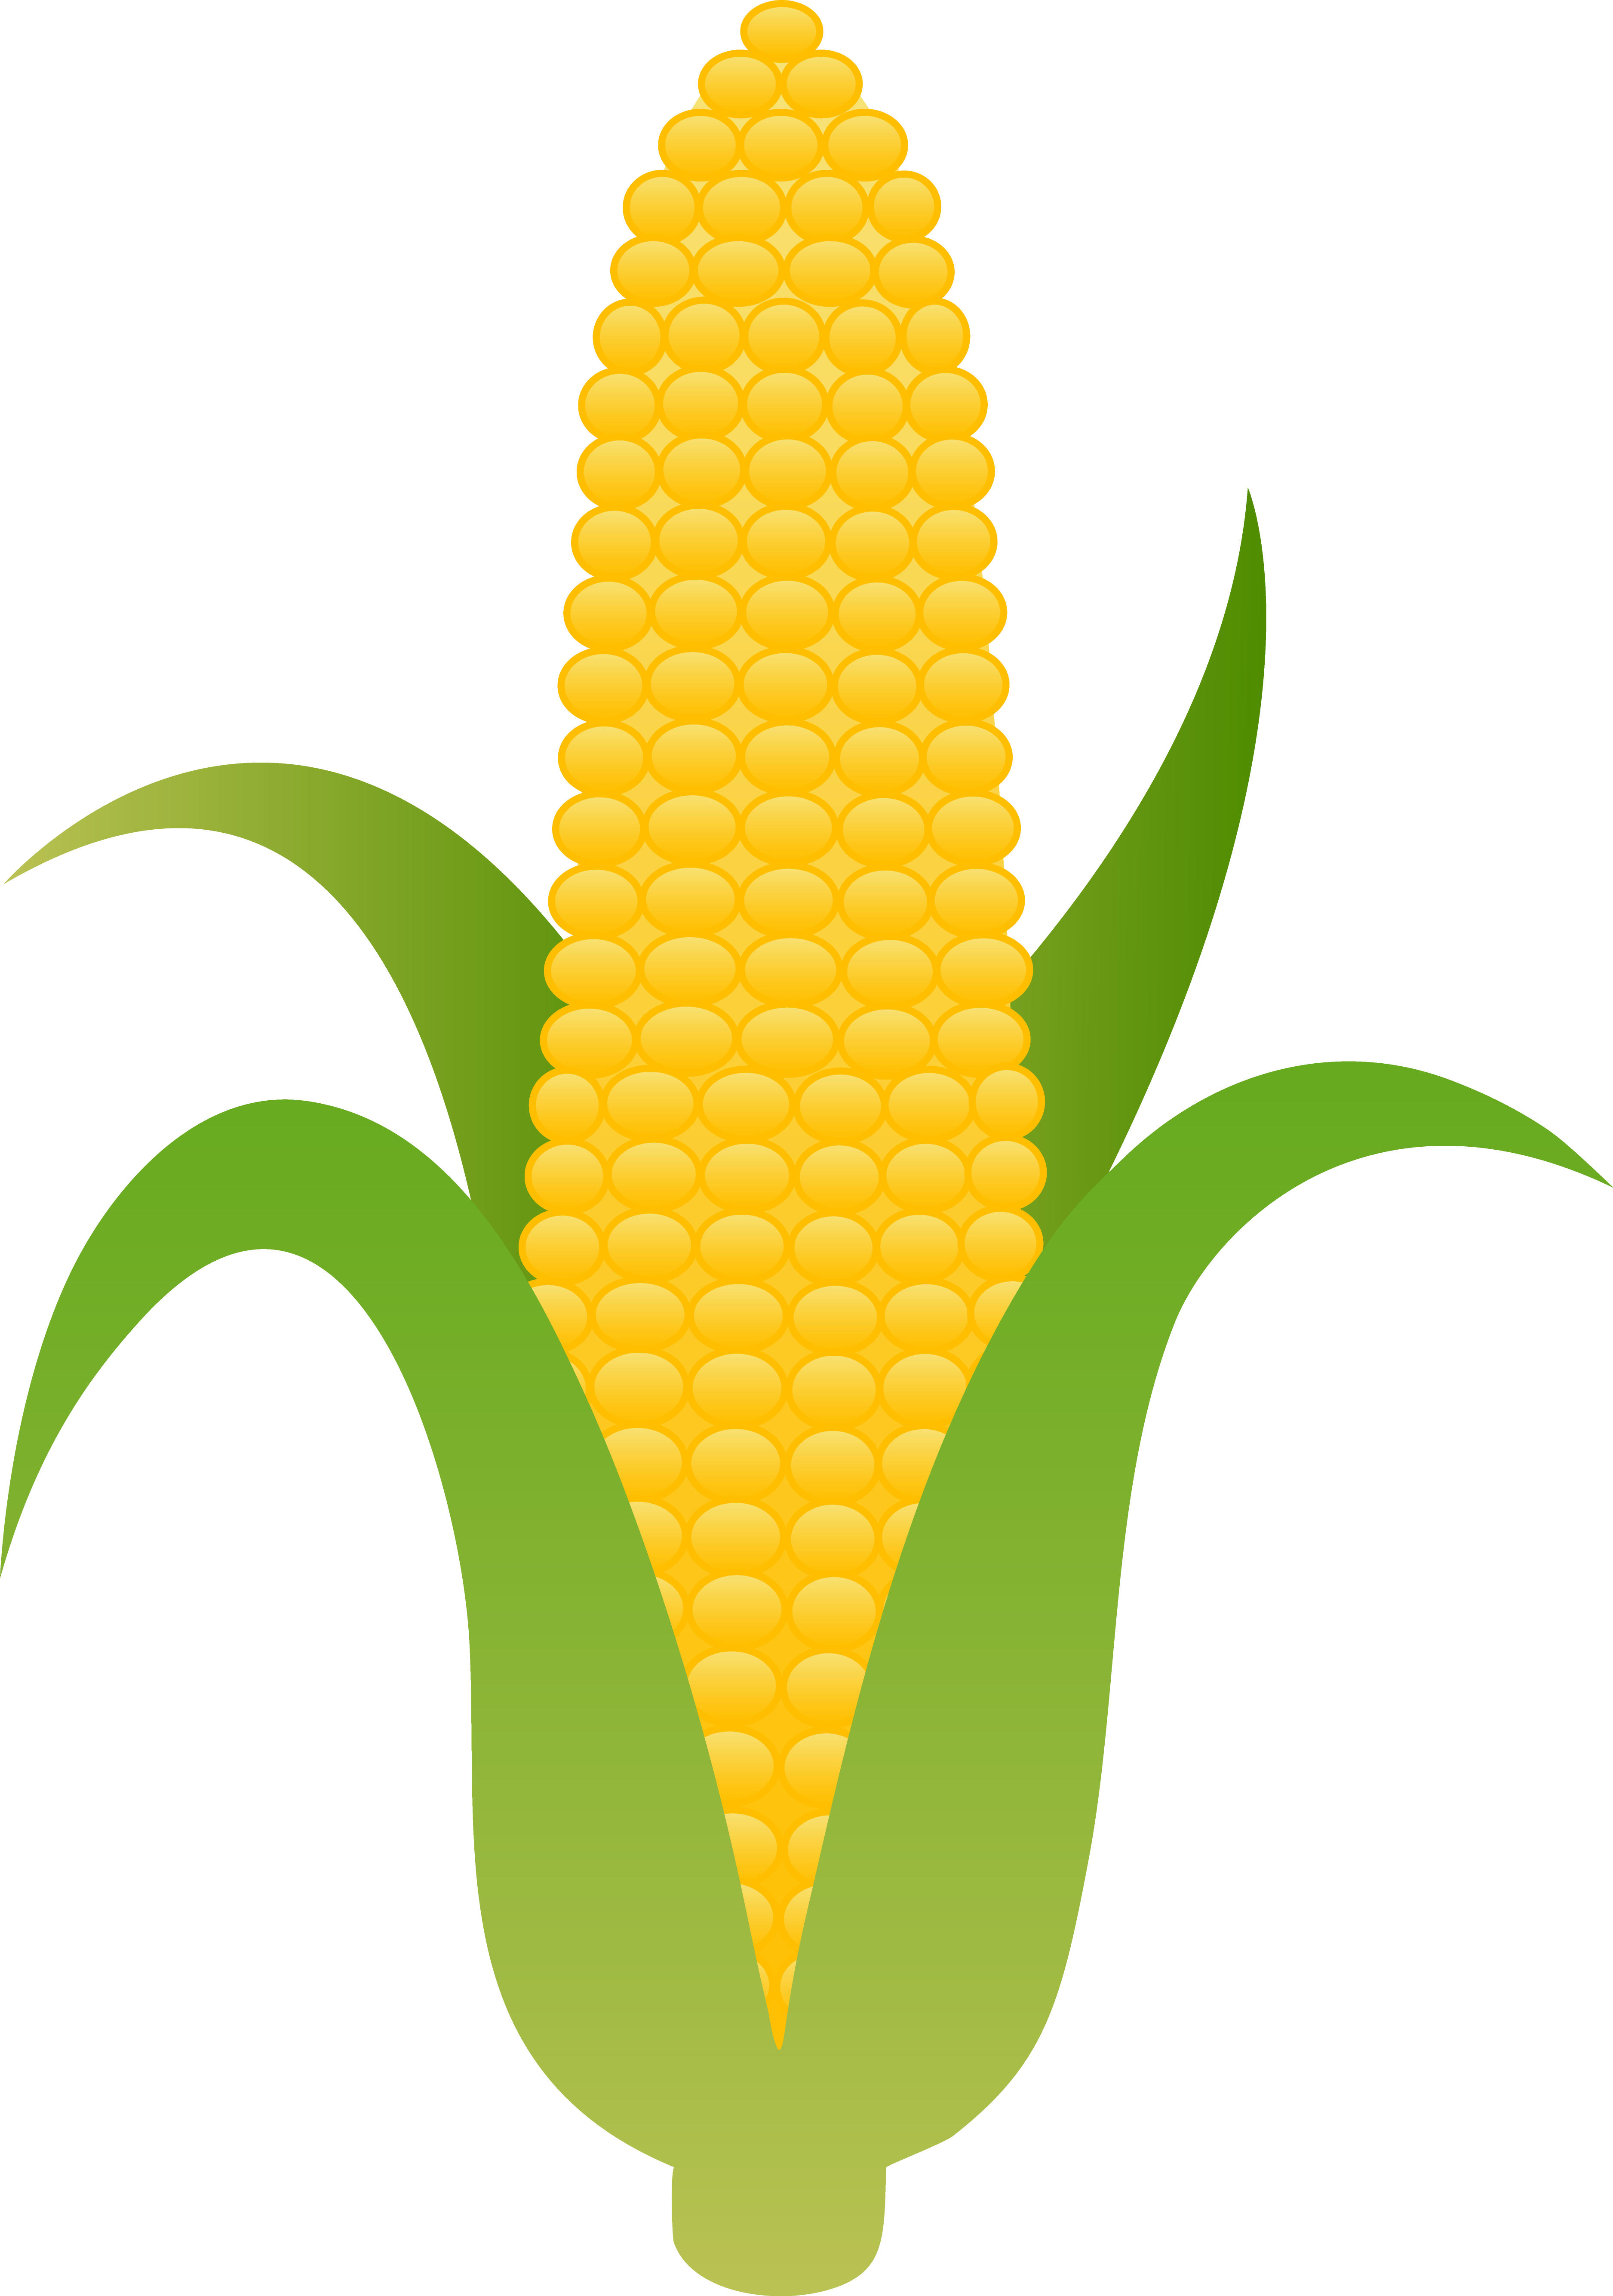 Images For Clip Art Corn On ..-Images For Clip Art Corn On ..-15